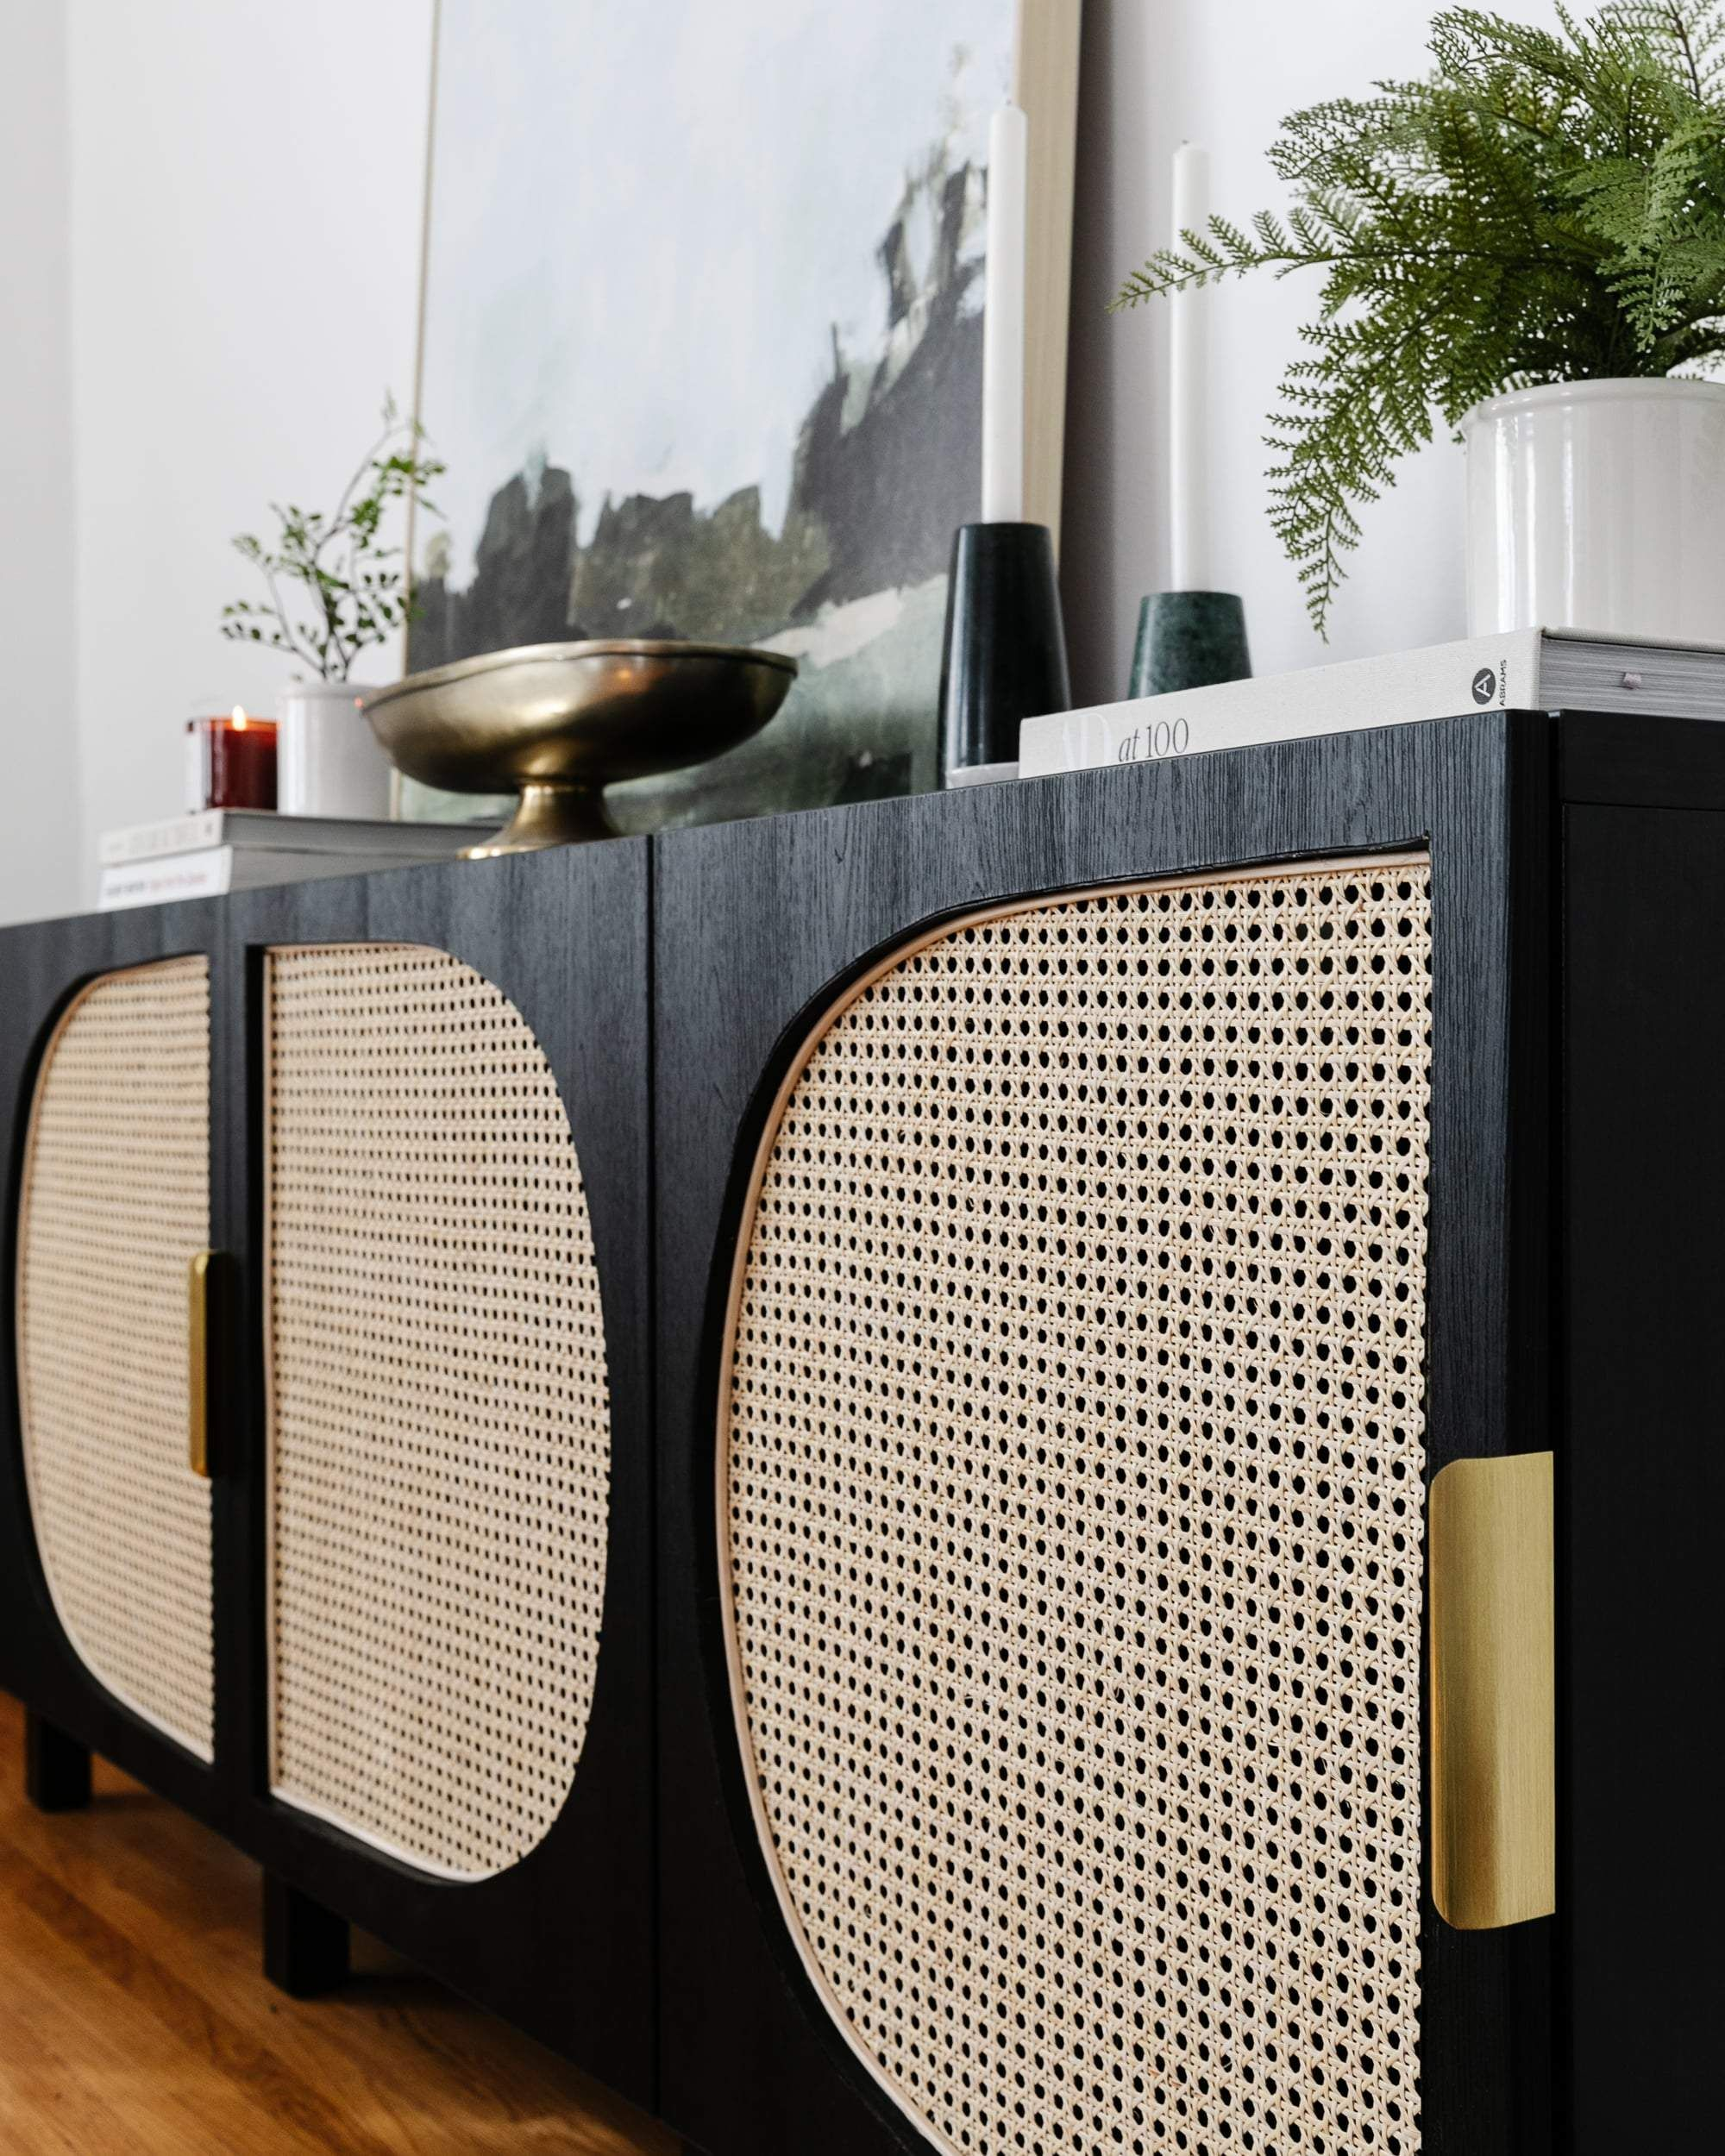 DIY Media Console Woven Cane Rattan IKEA Storage Hack BESTA TV Unit